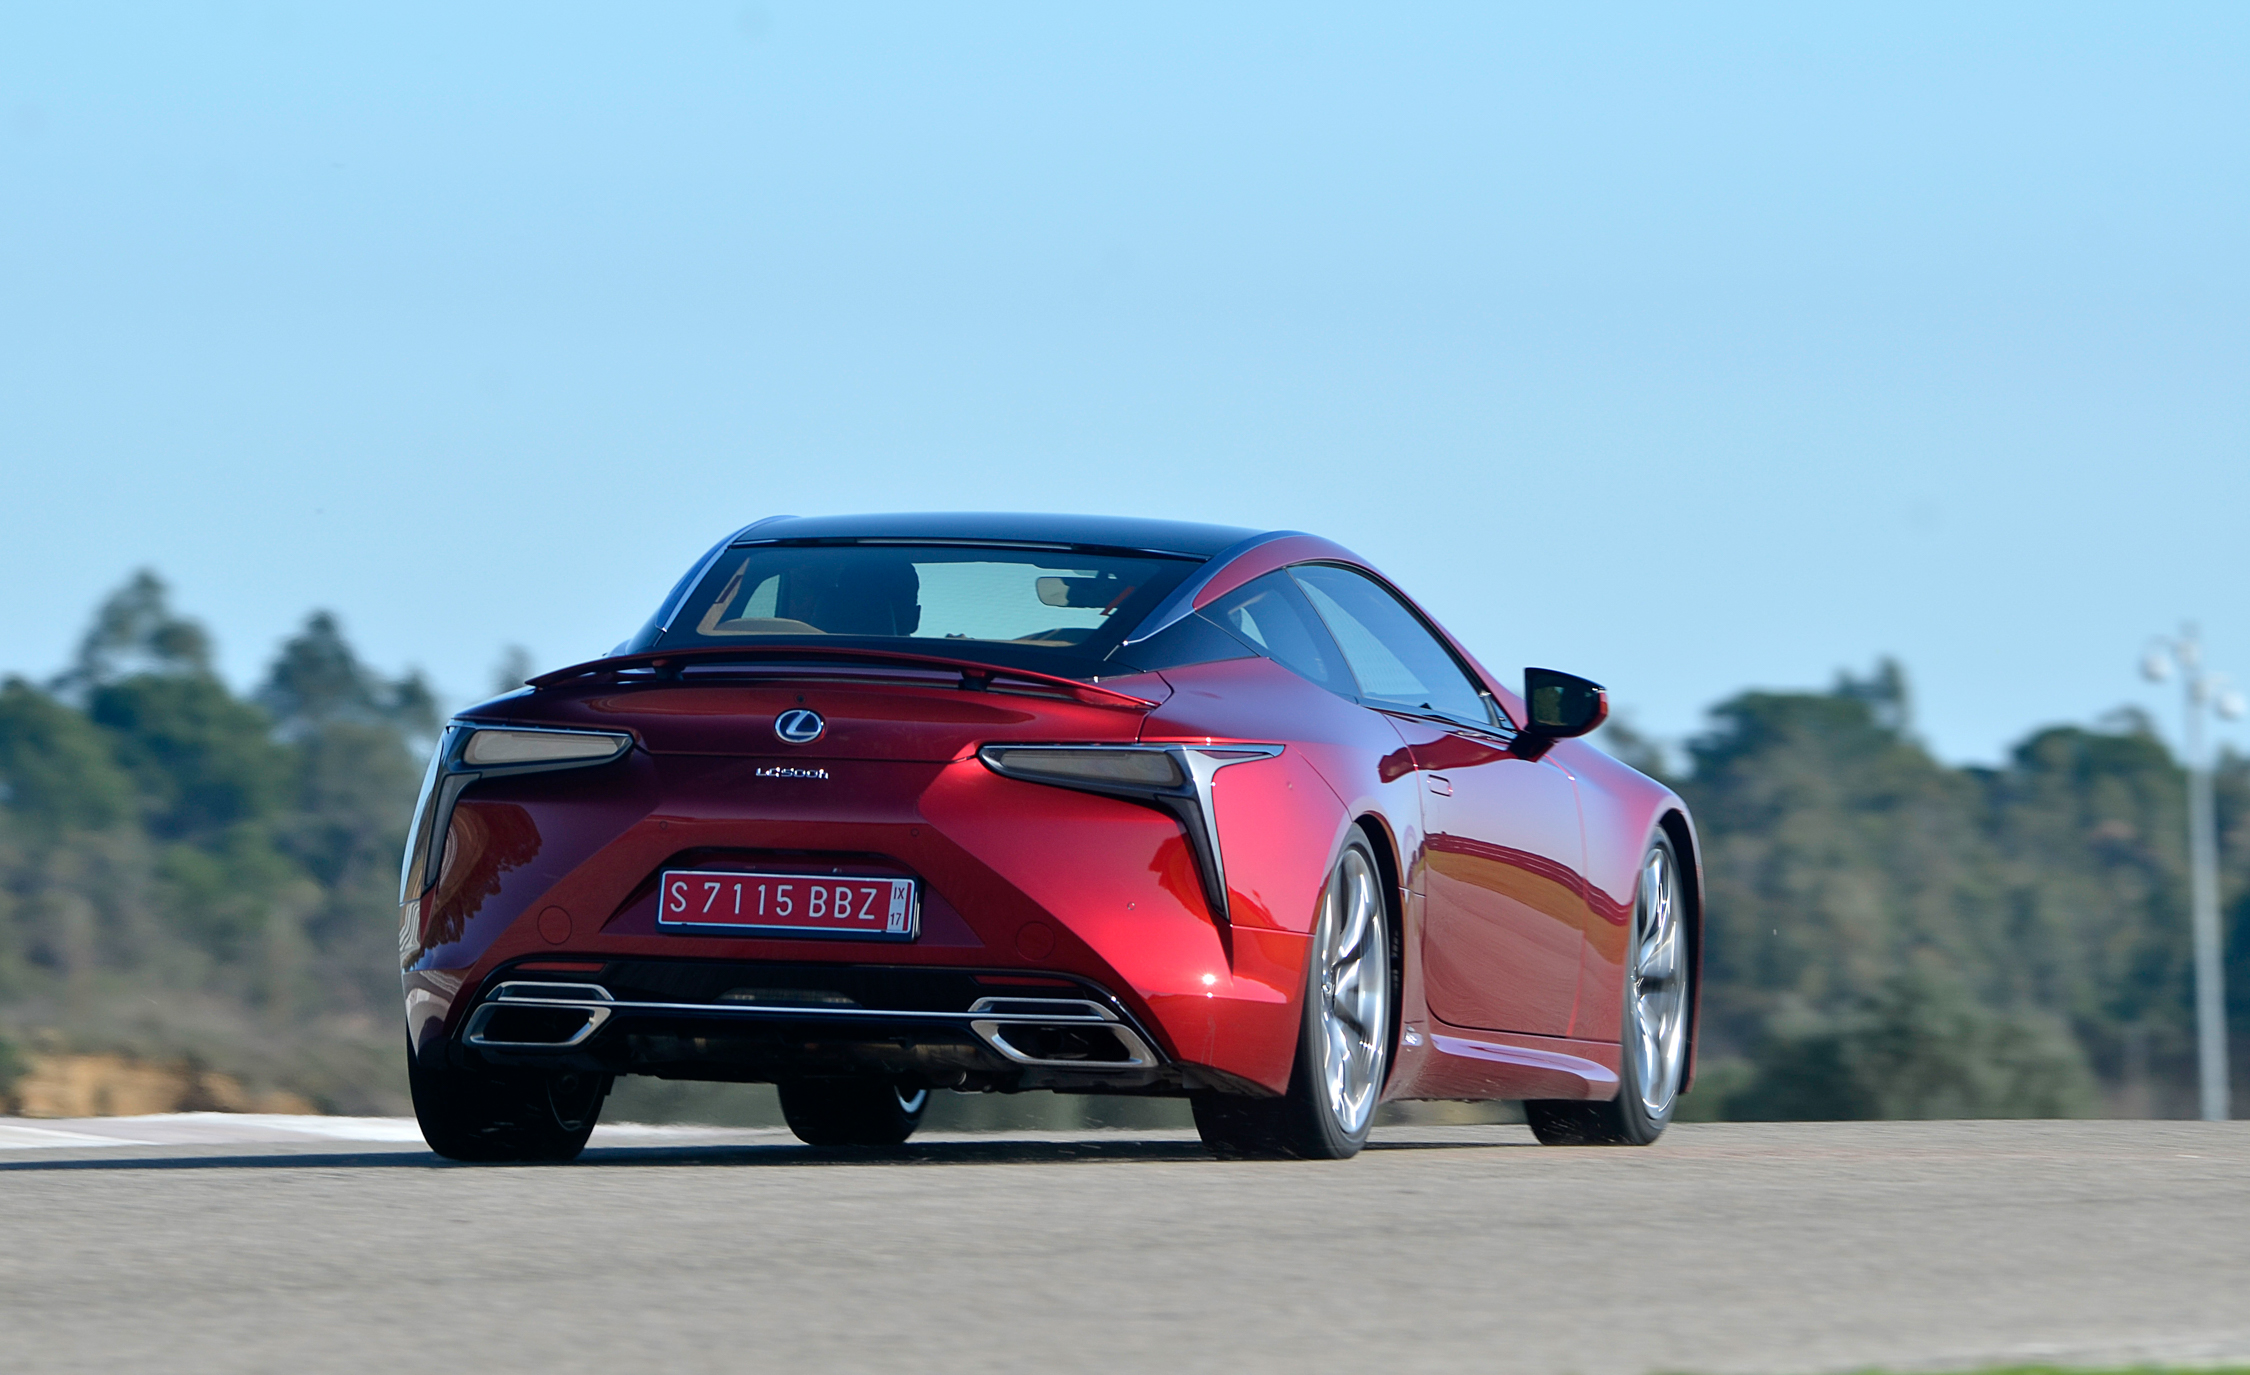 2018 Lexus Lc 500 Red Test Drive Rear View (Photo 26 of 84)